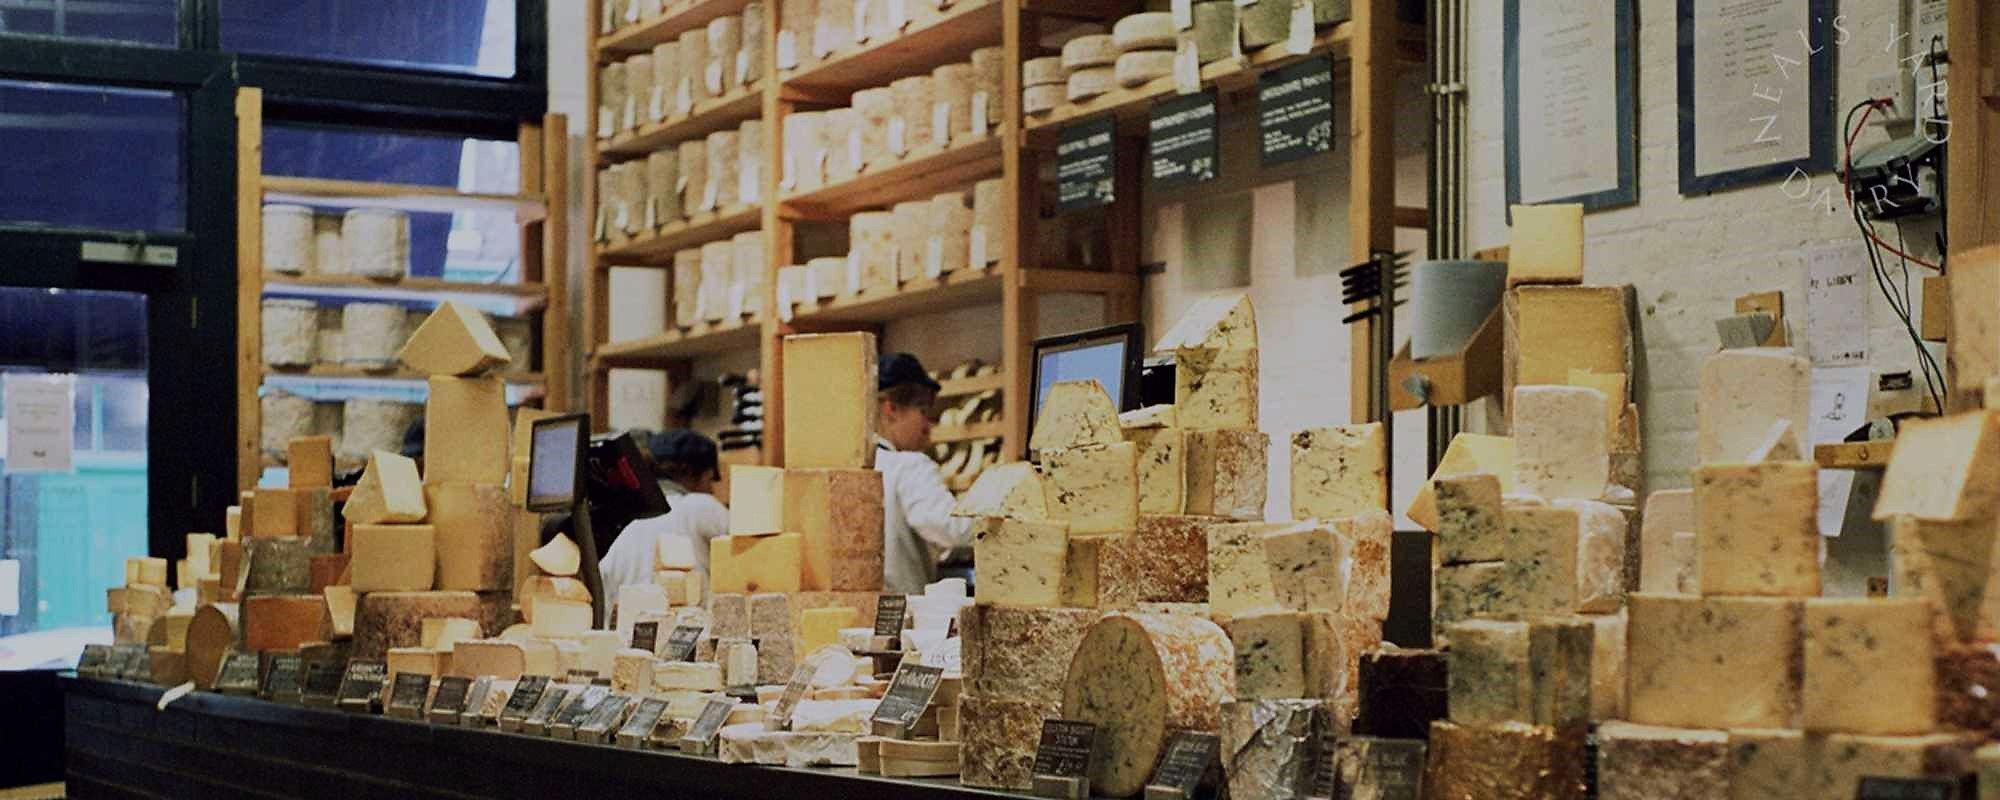 boutique-fromage-neals-yard-dairy-ateliers-degustation-saveurs-campagne-anglaise